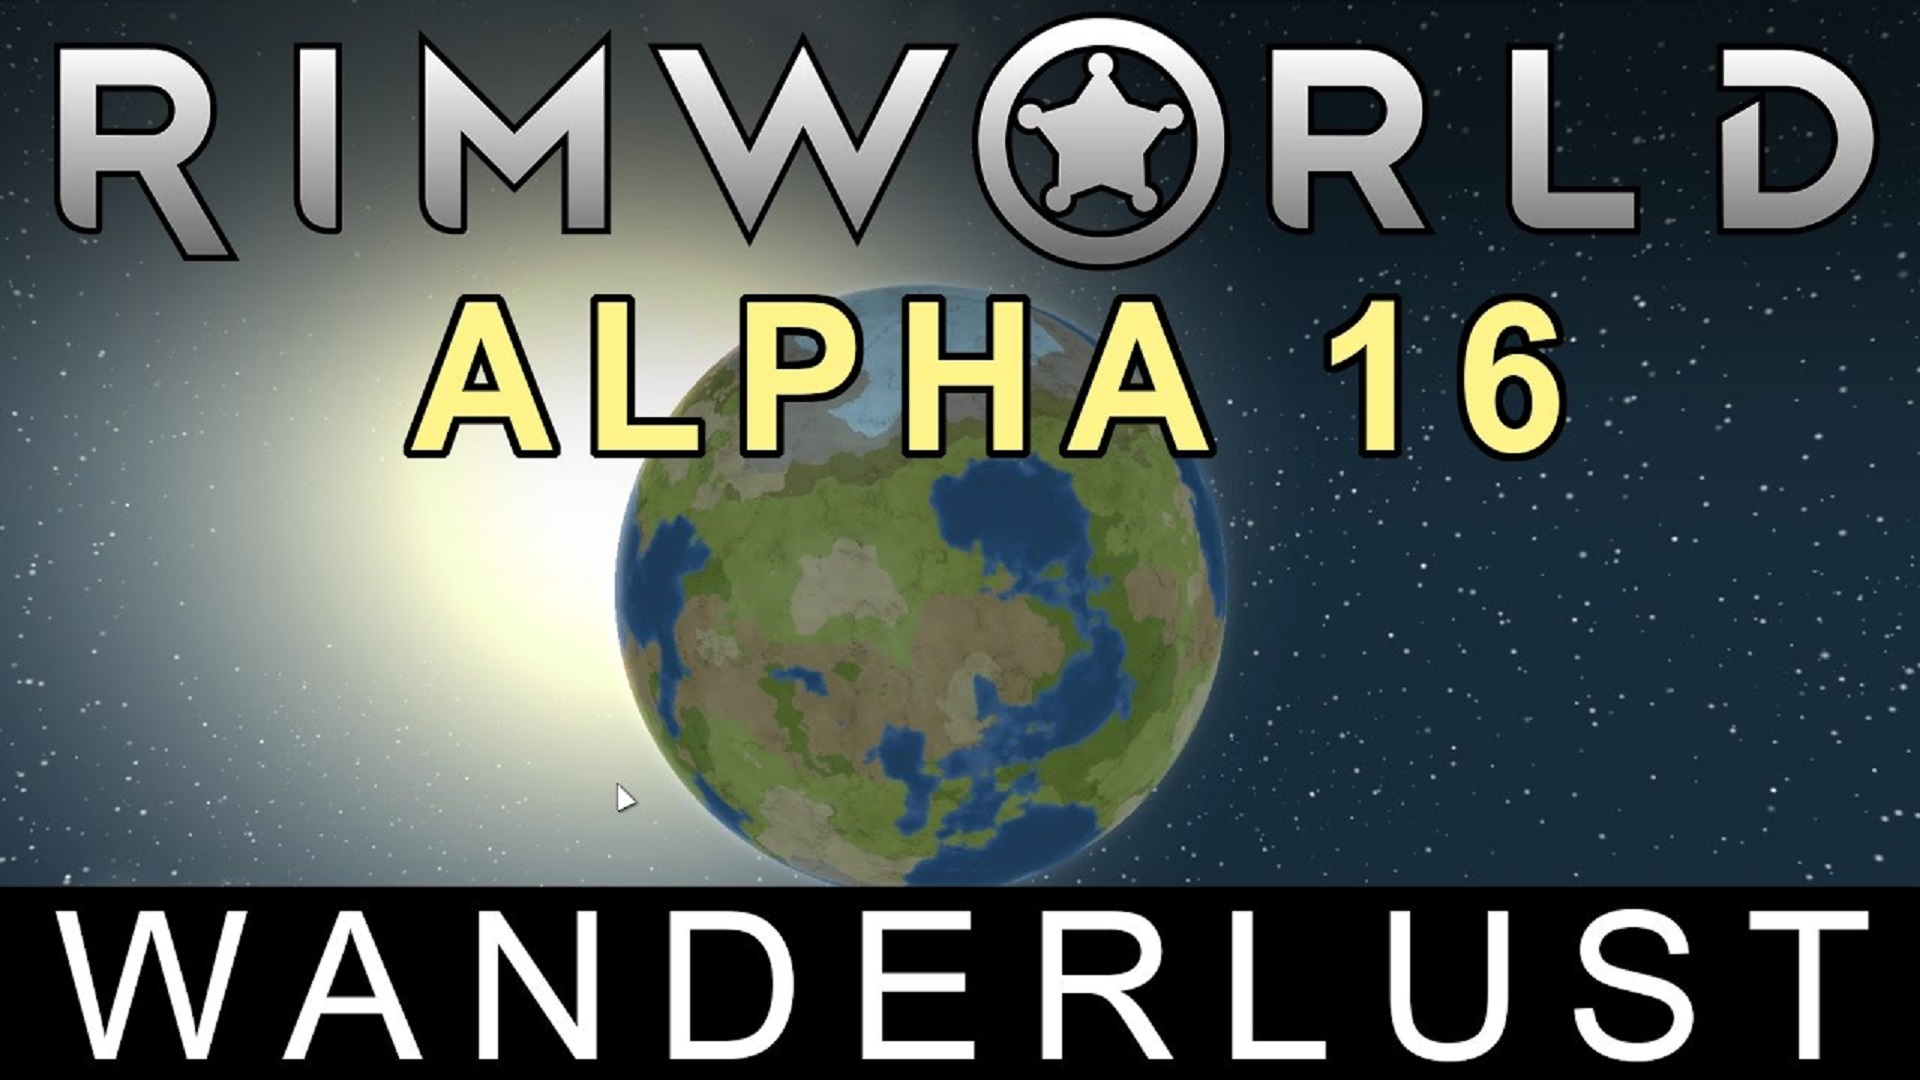 Wanderlust in Rimworld | Stormpeonz